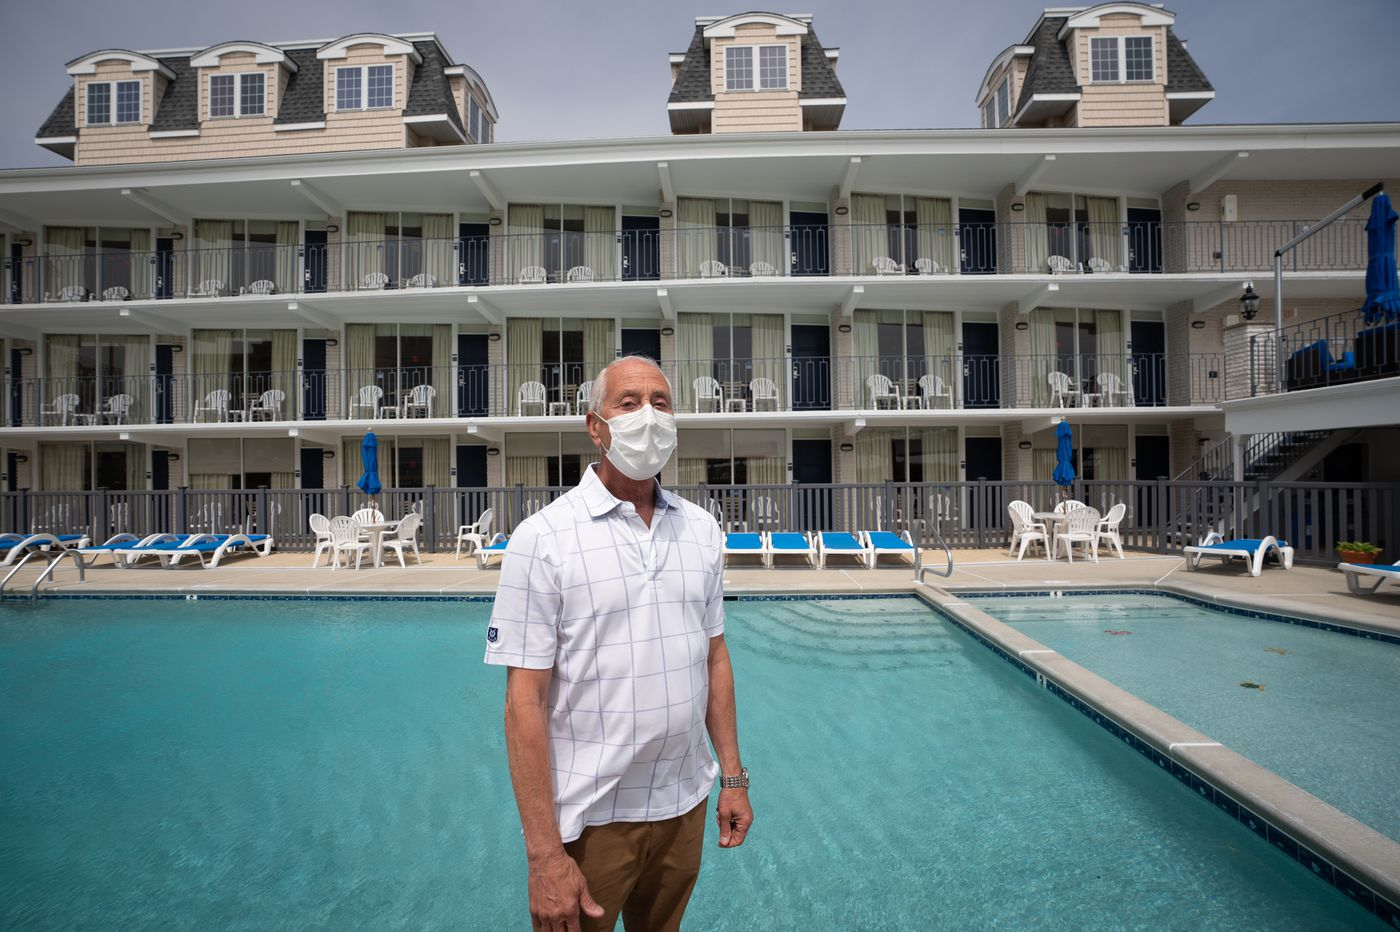 Checking in: Wildwood motels at limping Jersey Shore first to welcome guests